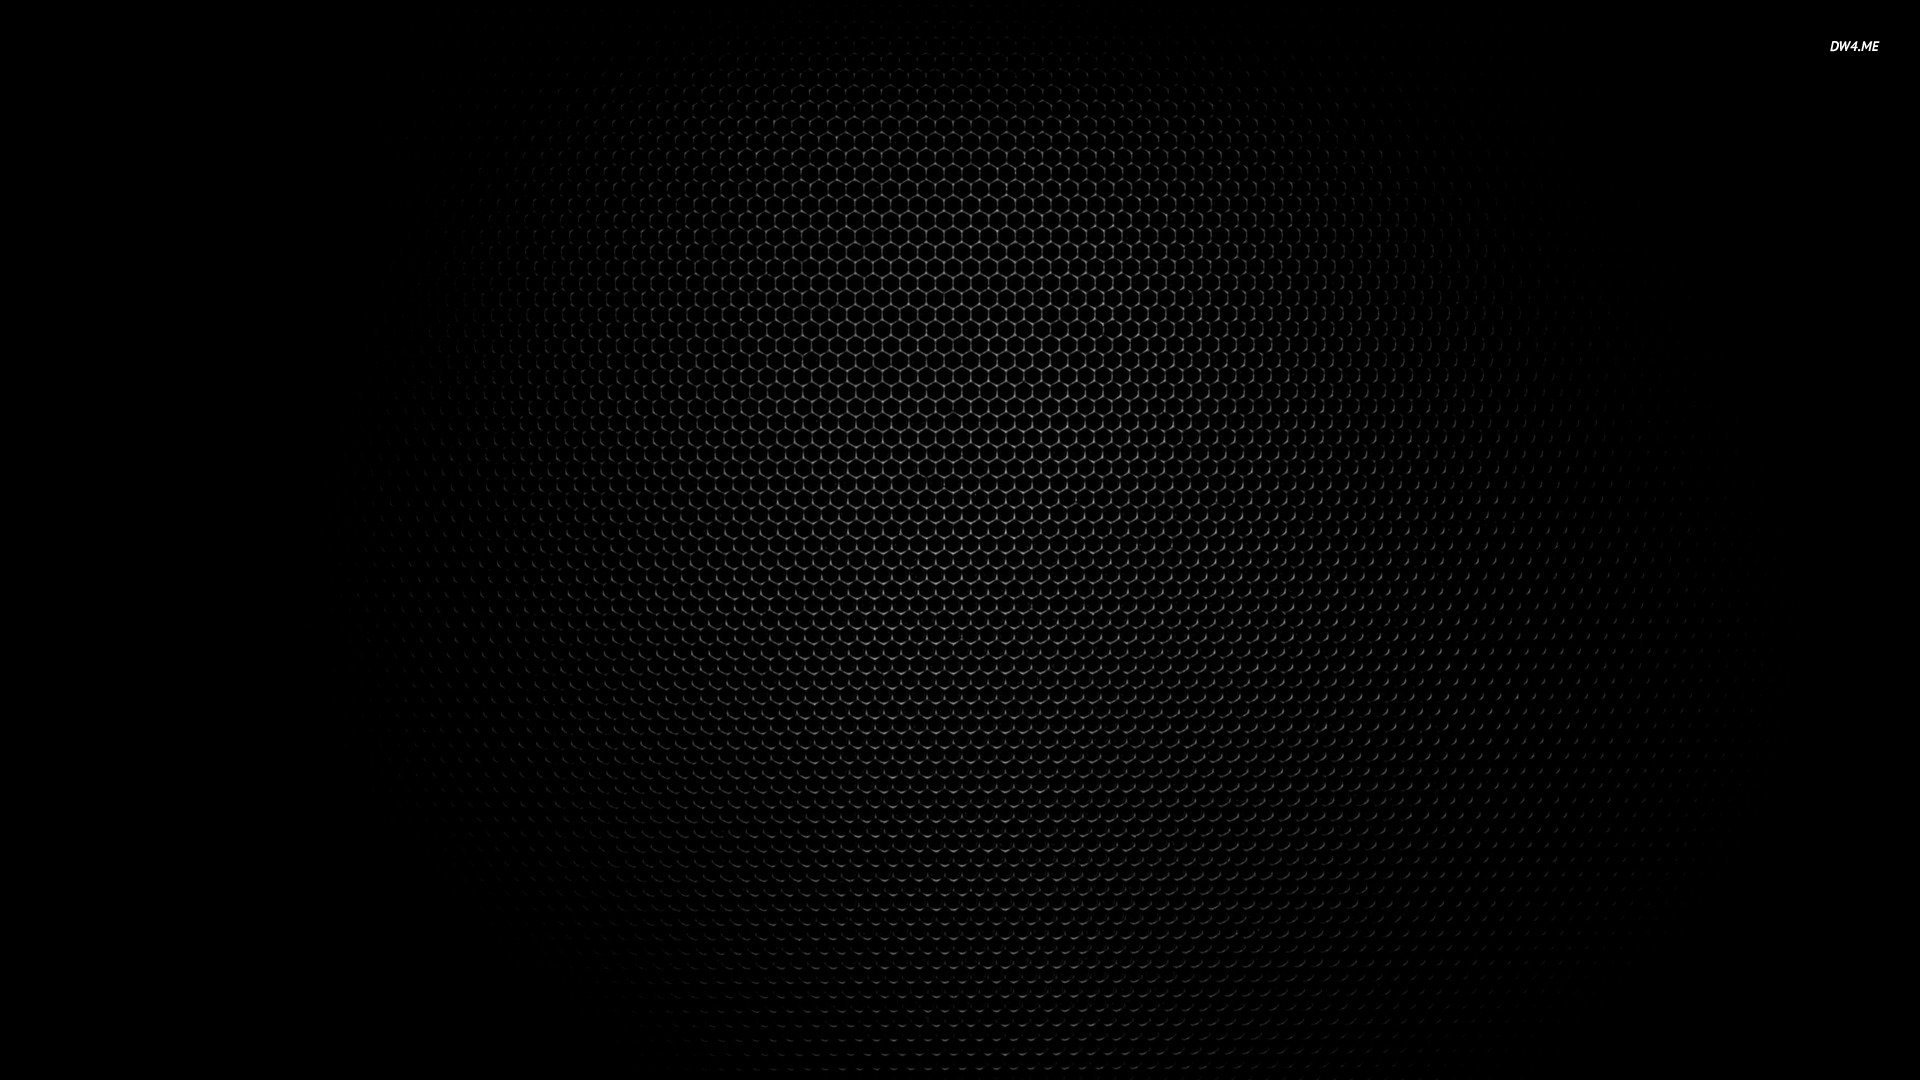 black screen mesh desktop wallpaper 24693 1920x1080